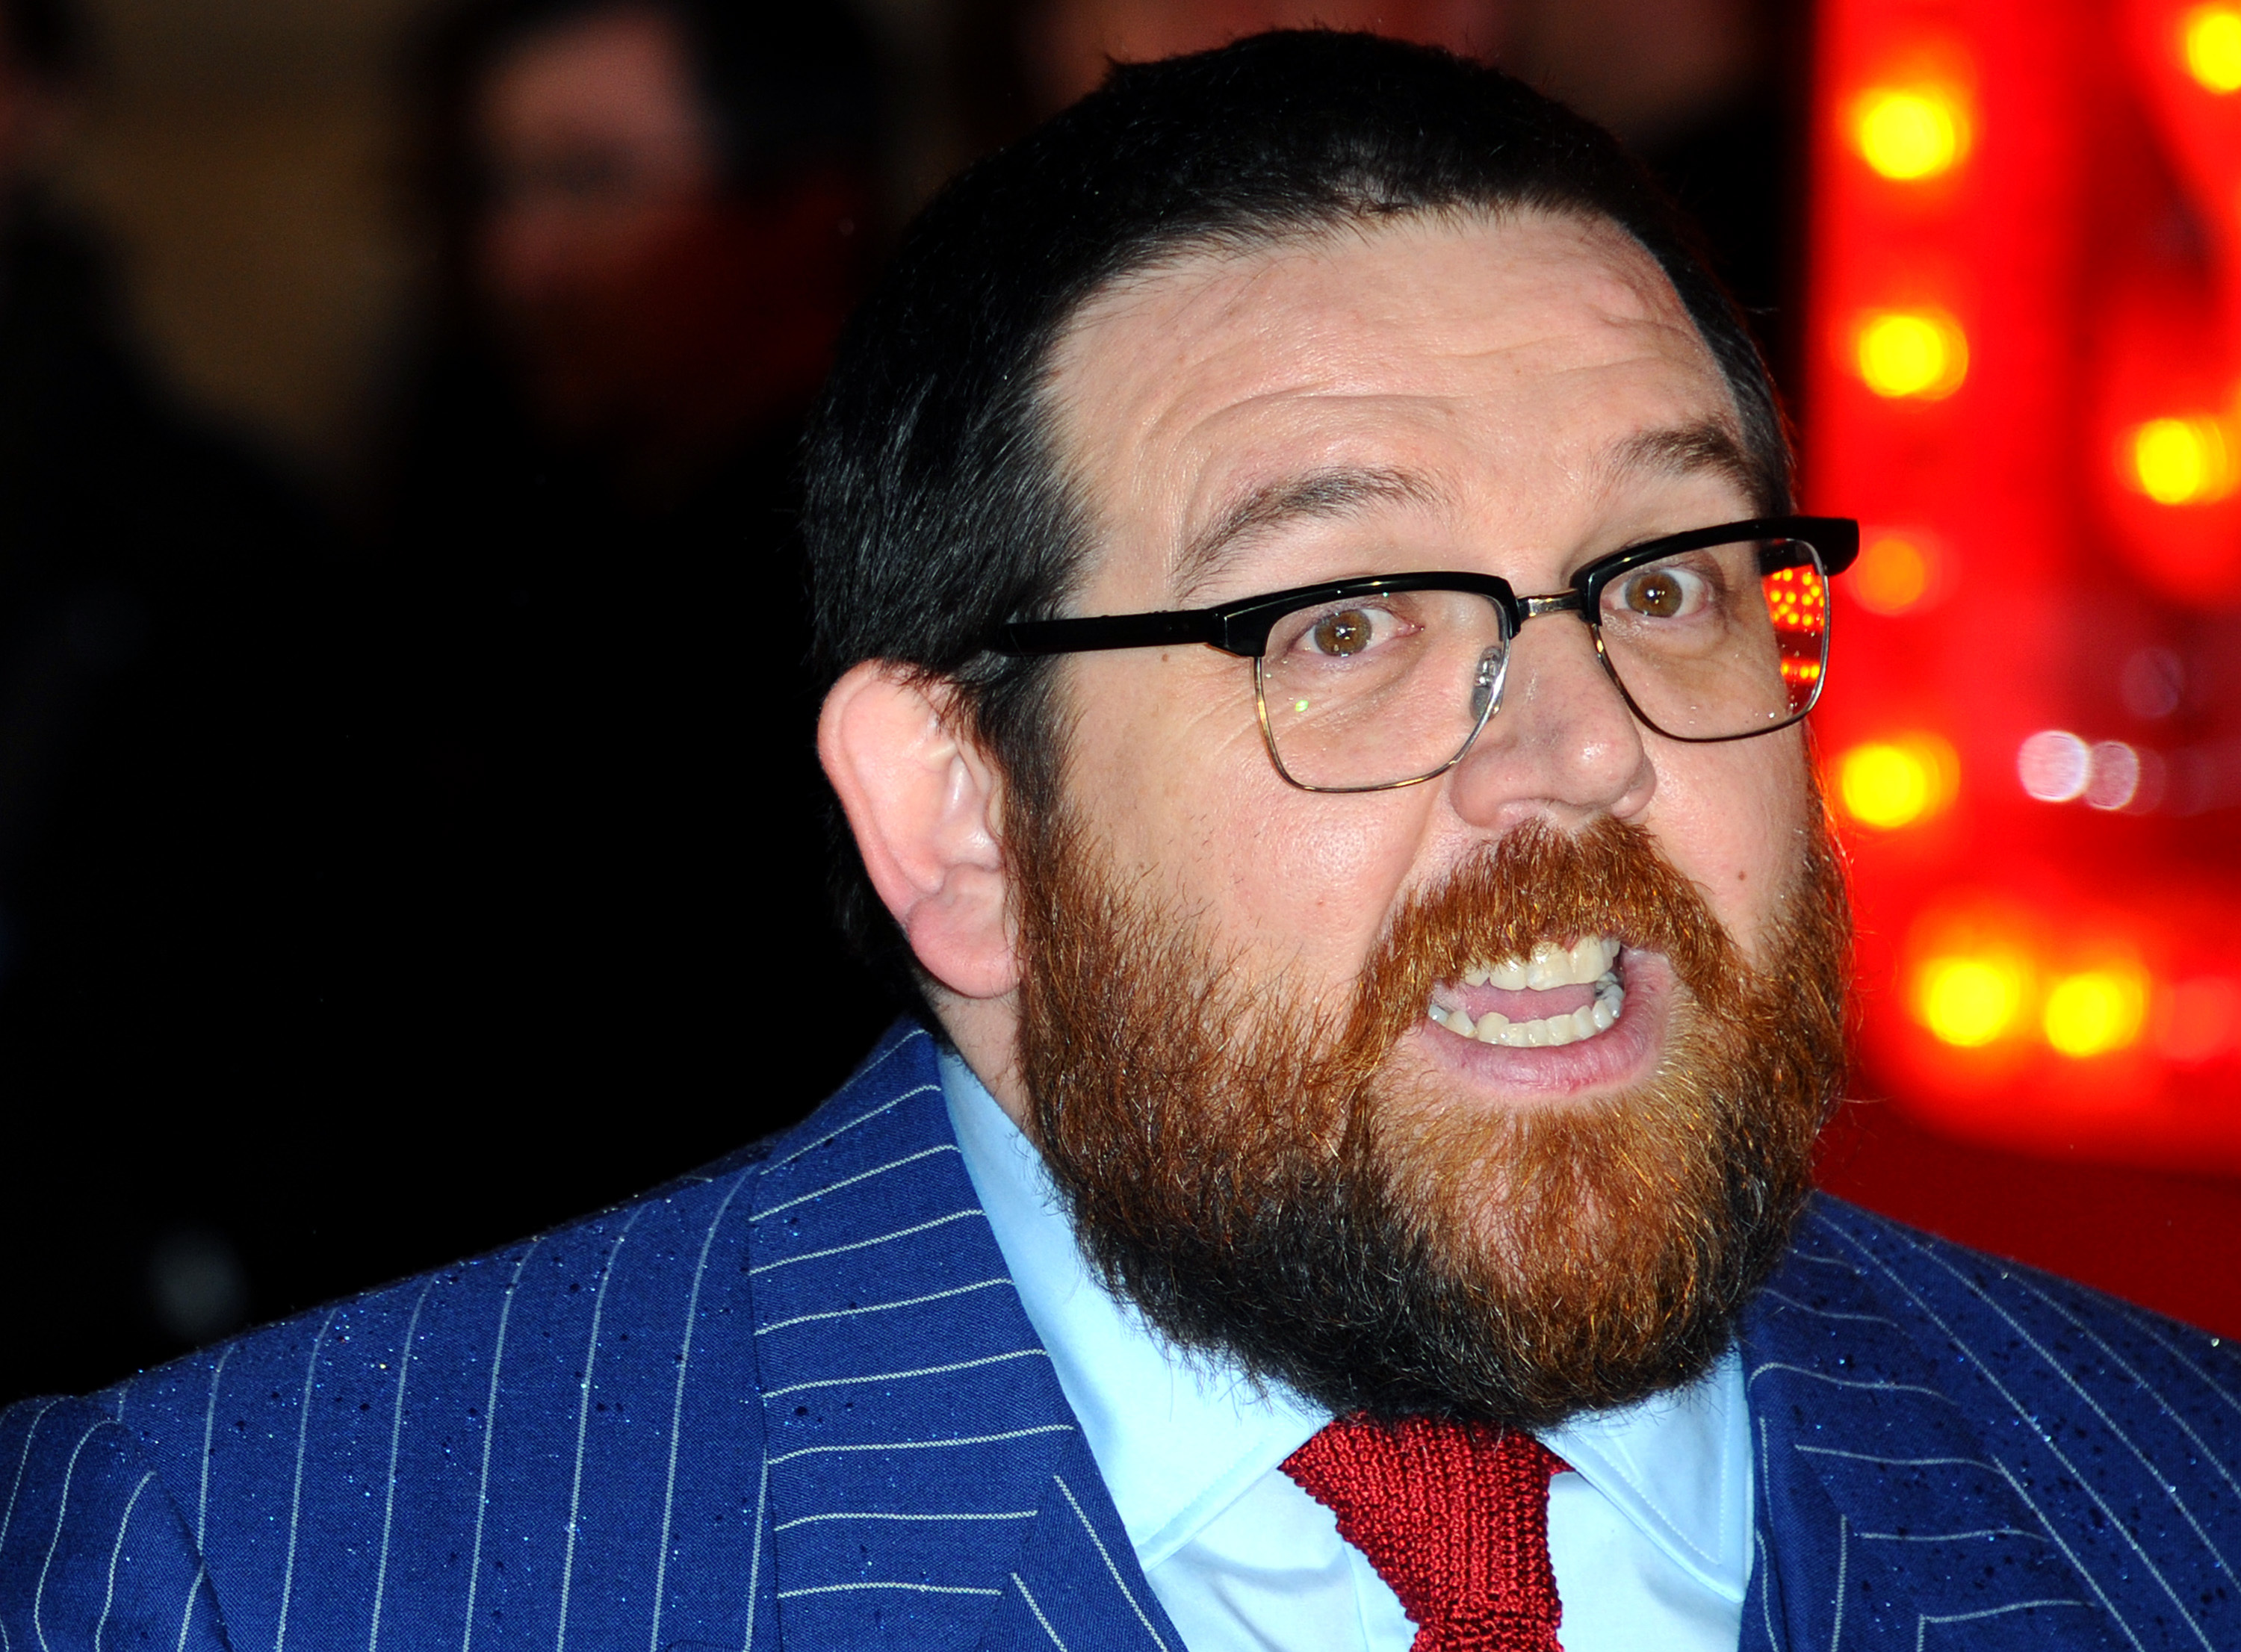 Nick Frost Wallpaper